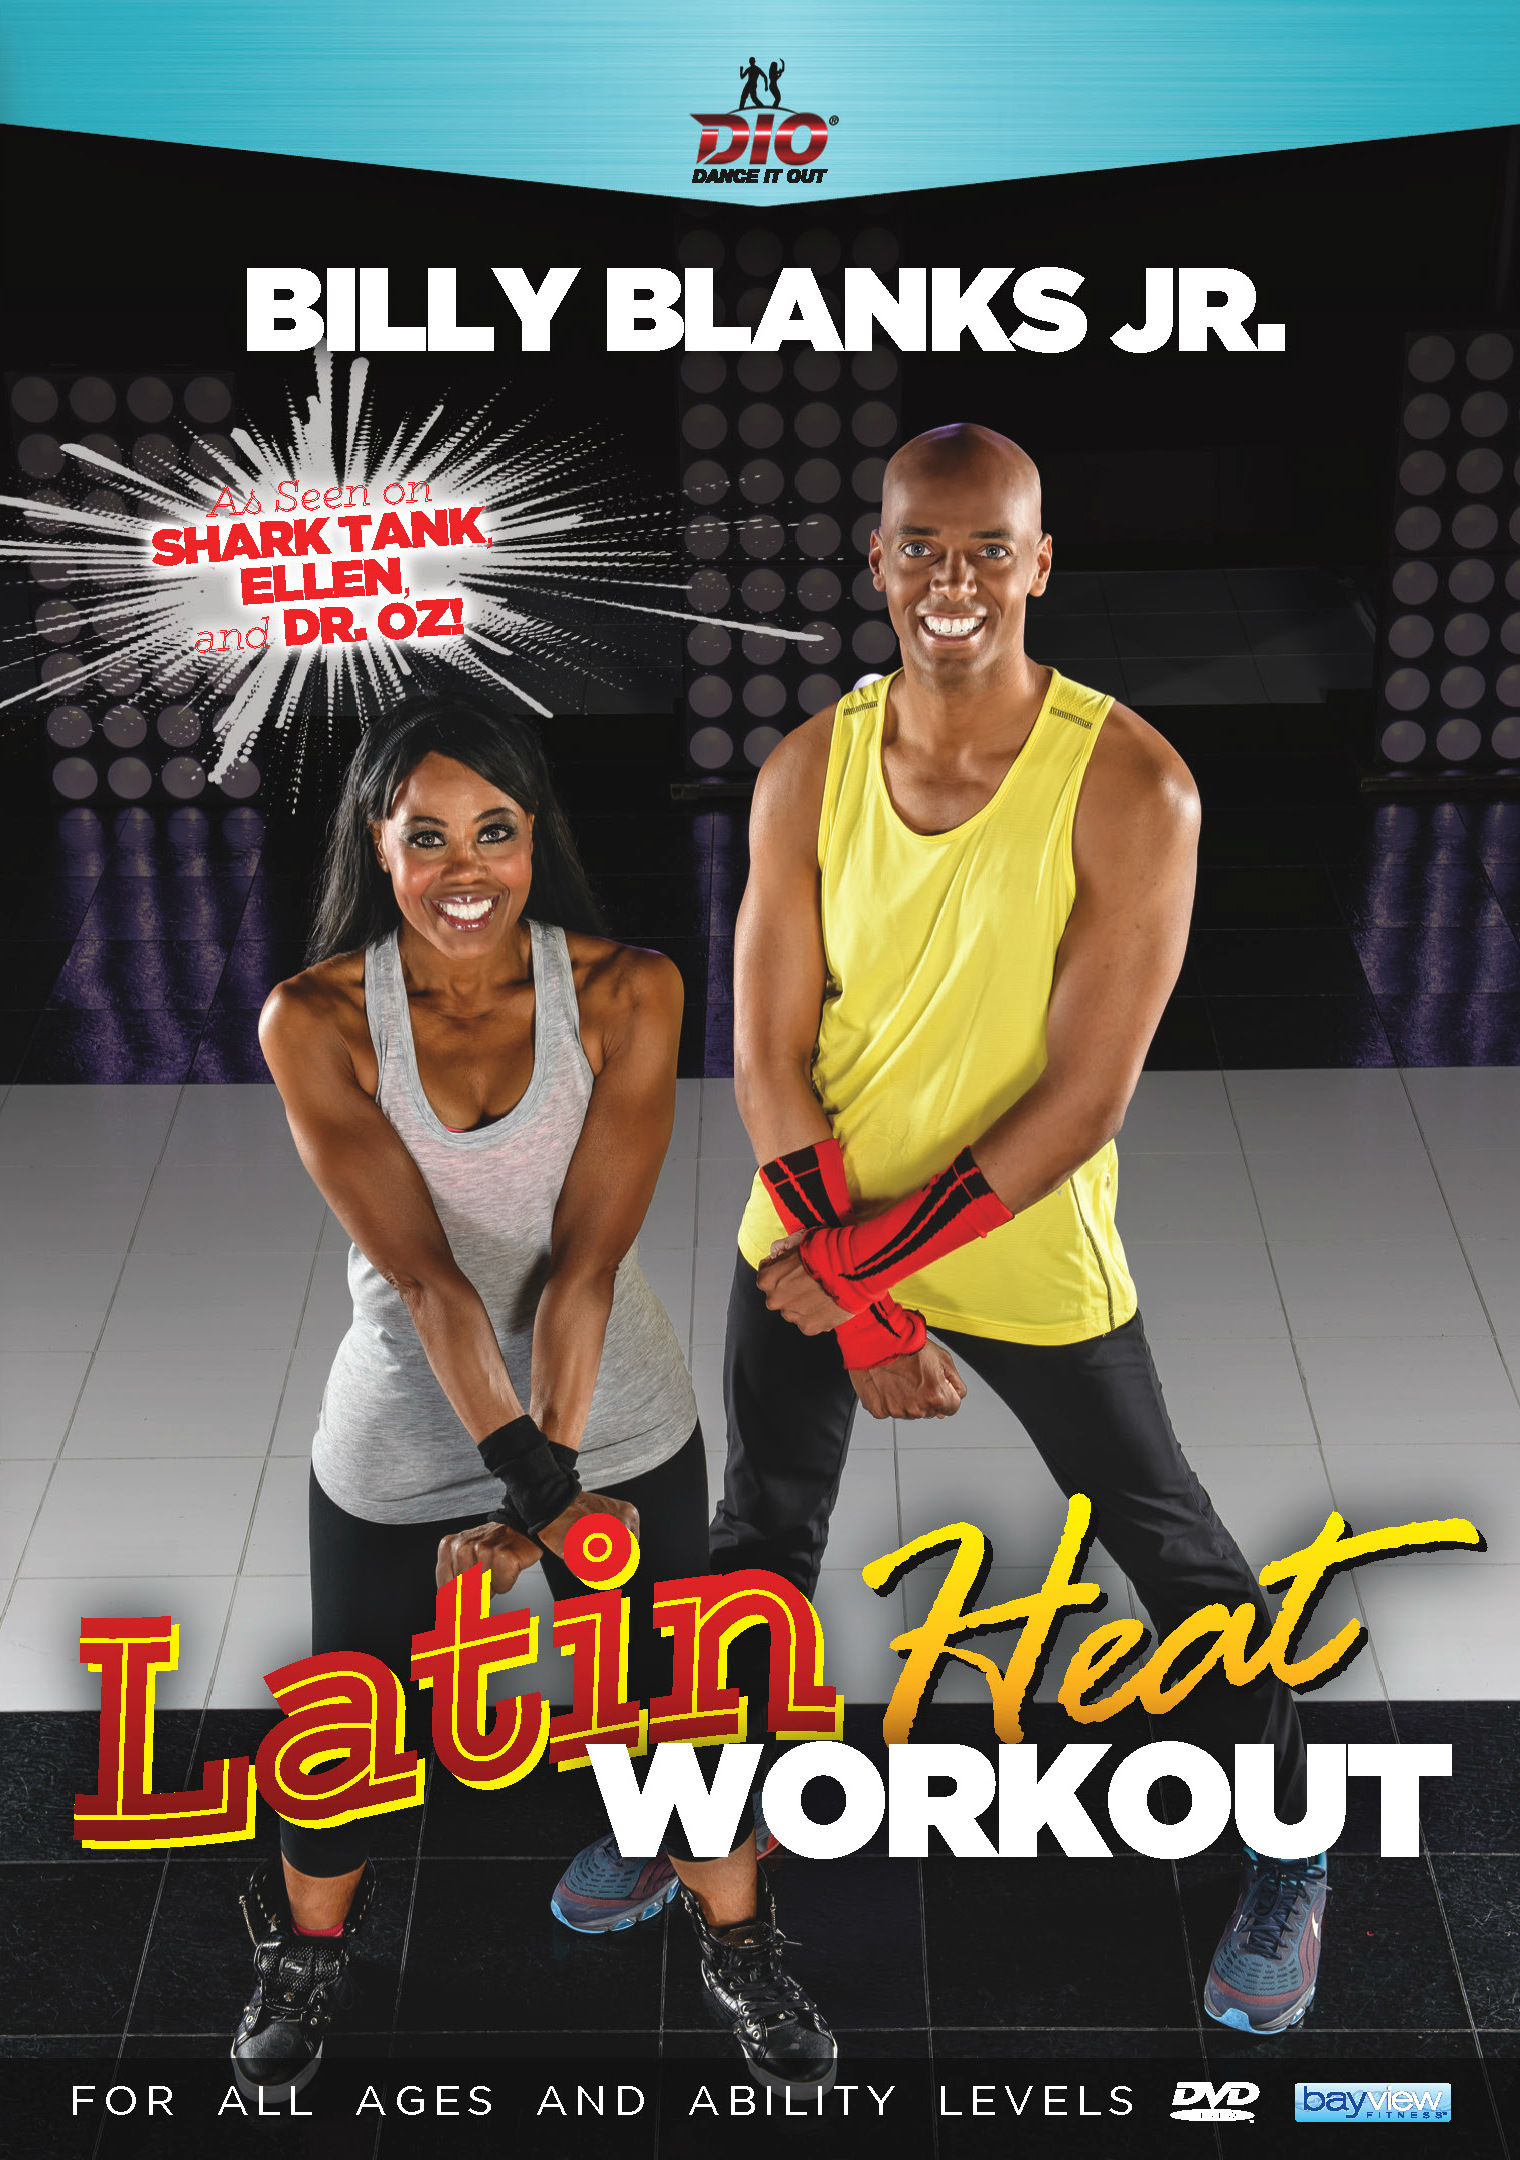 Billy Blanks Jr.: Dance It Out - Latin Heat Workout